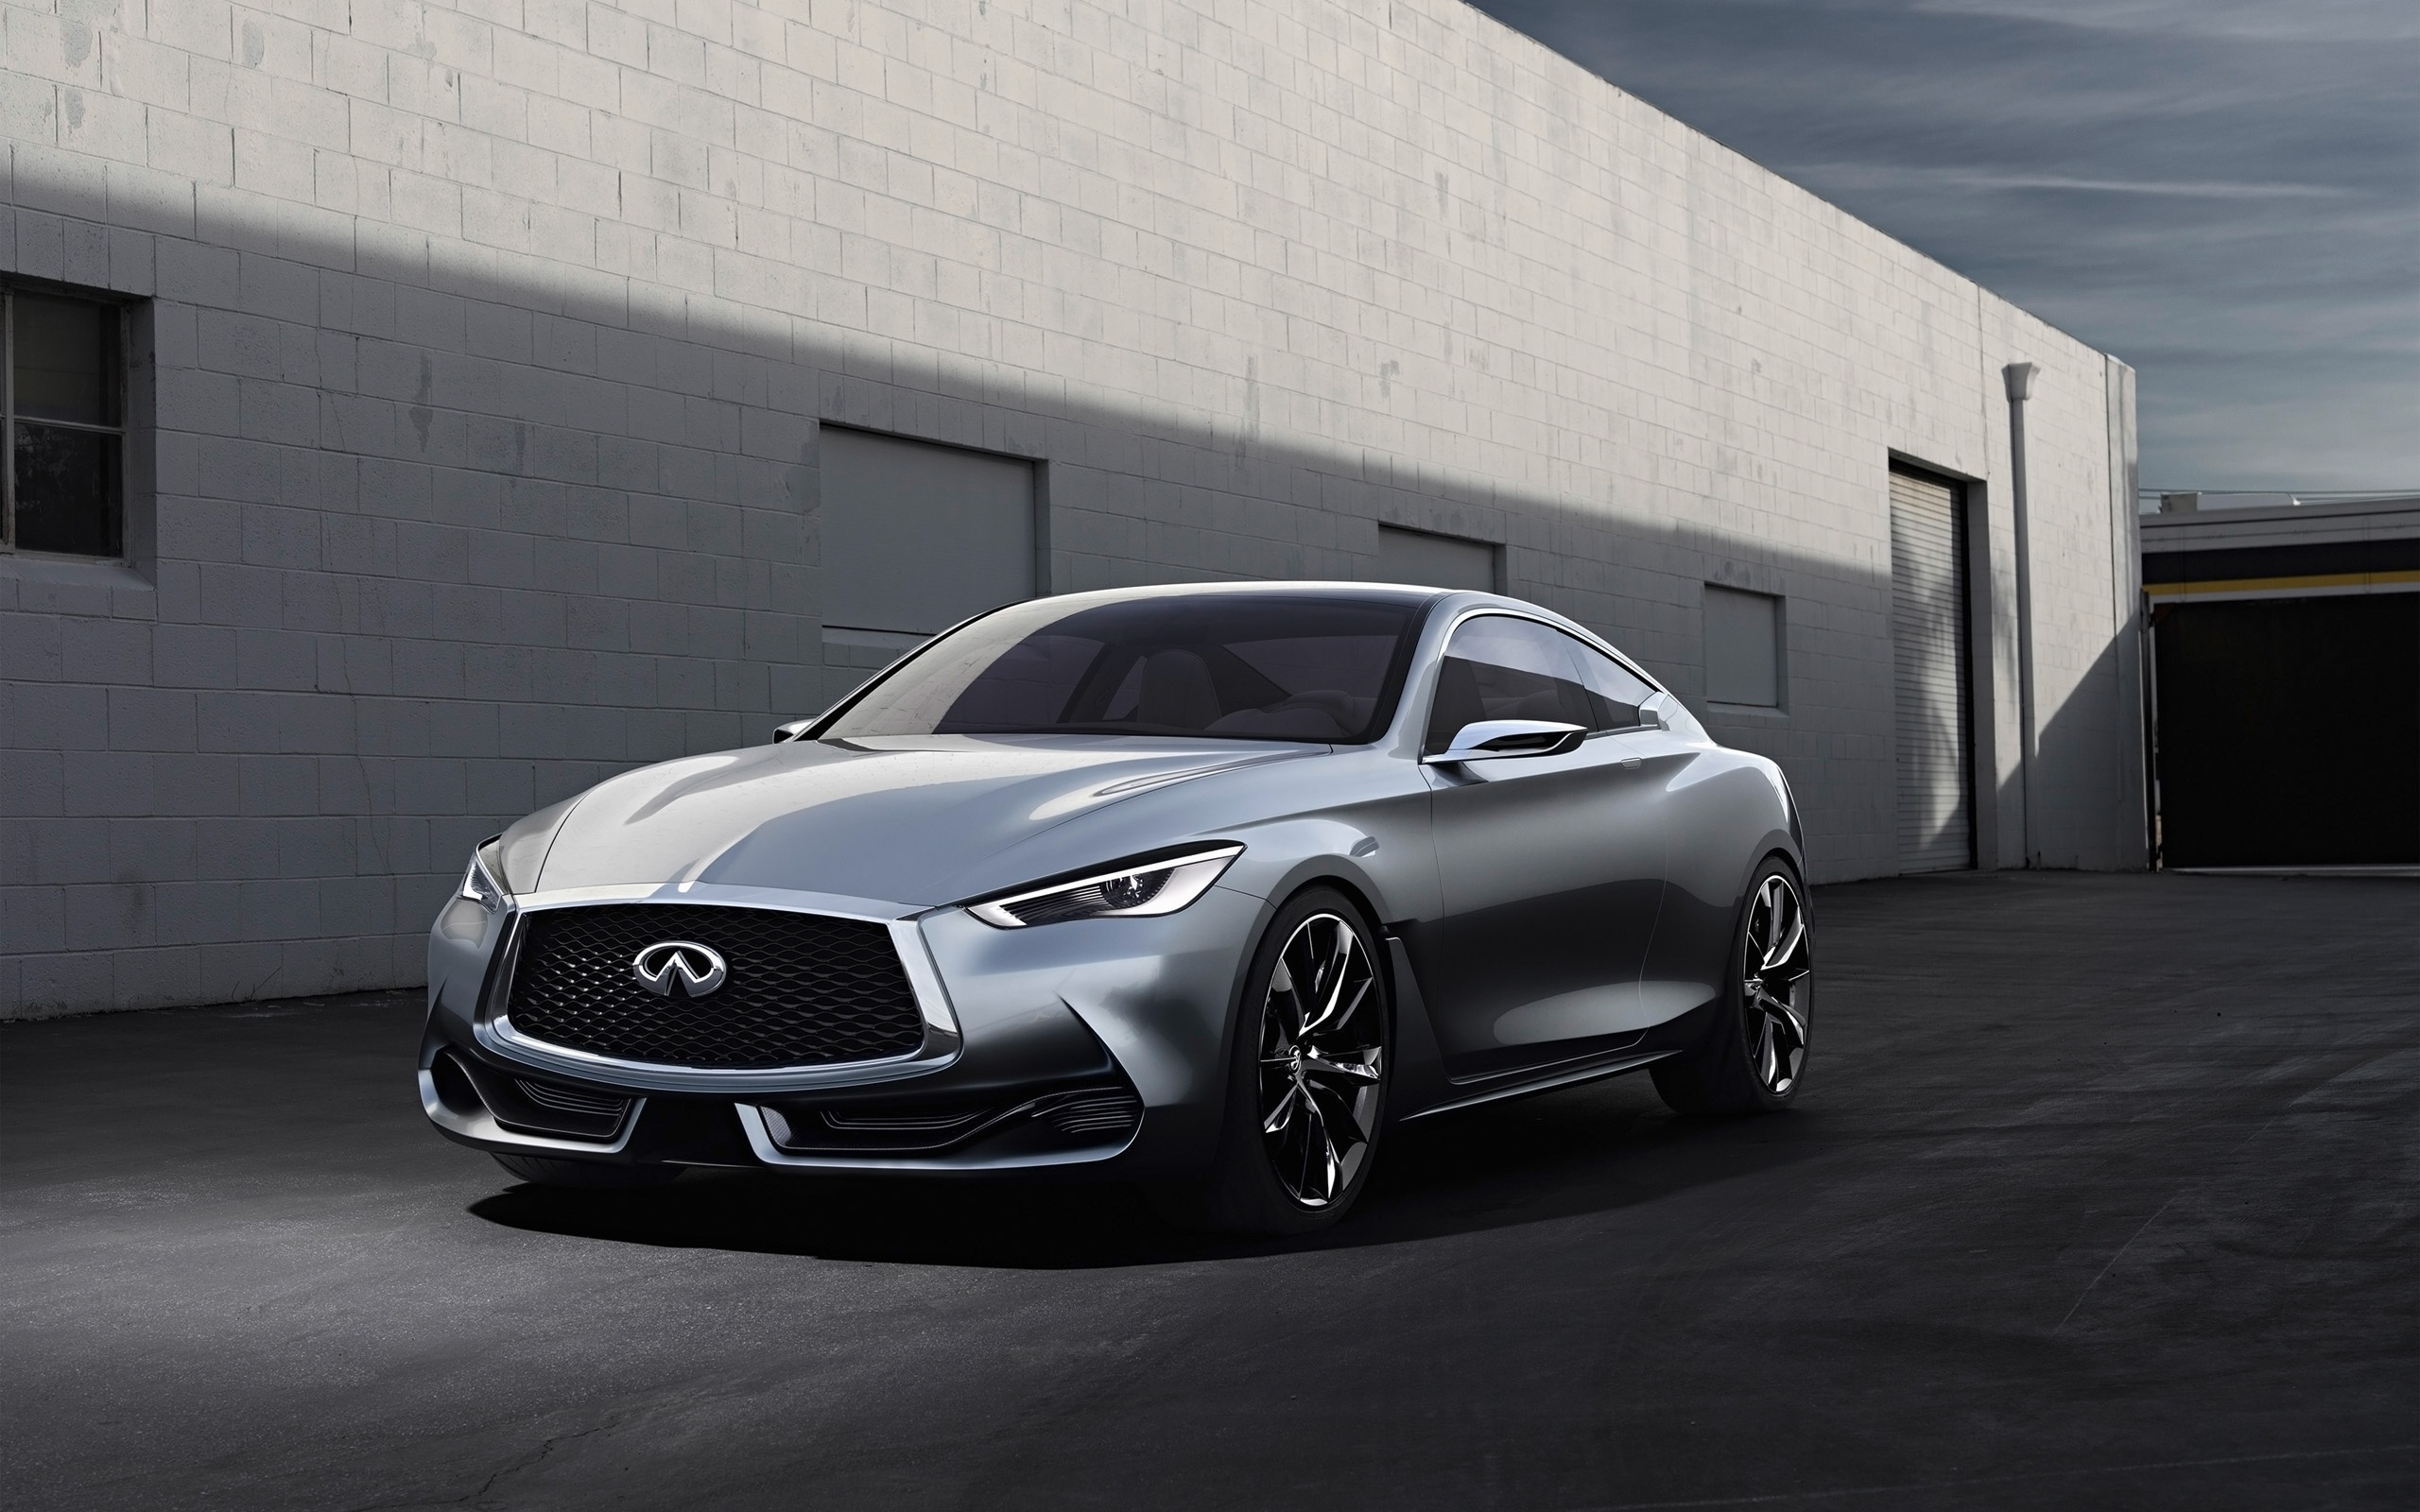 Infiniti Wallpapers and Background Images   stmednet 2560x1600